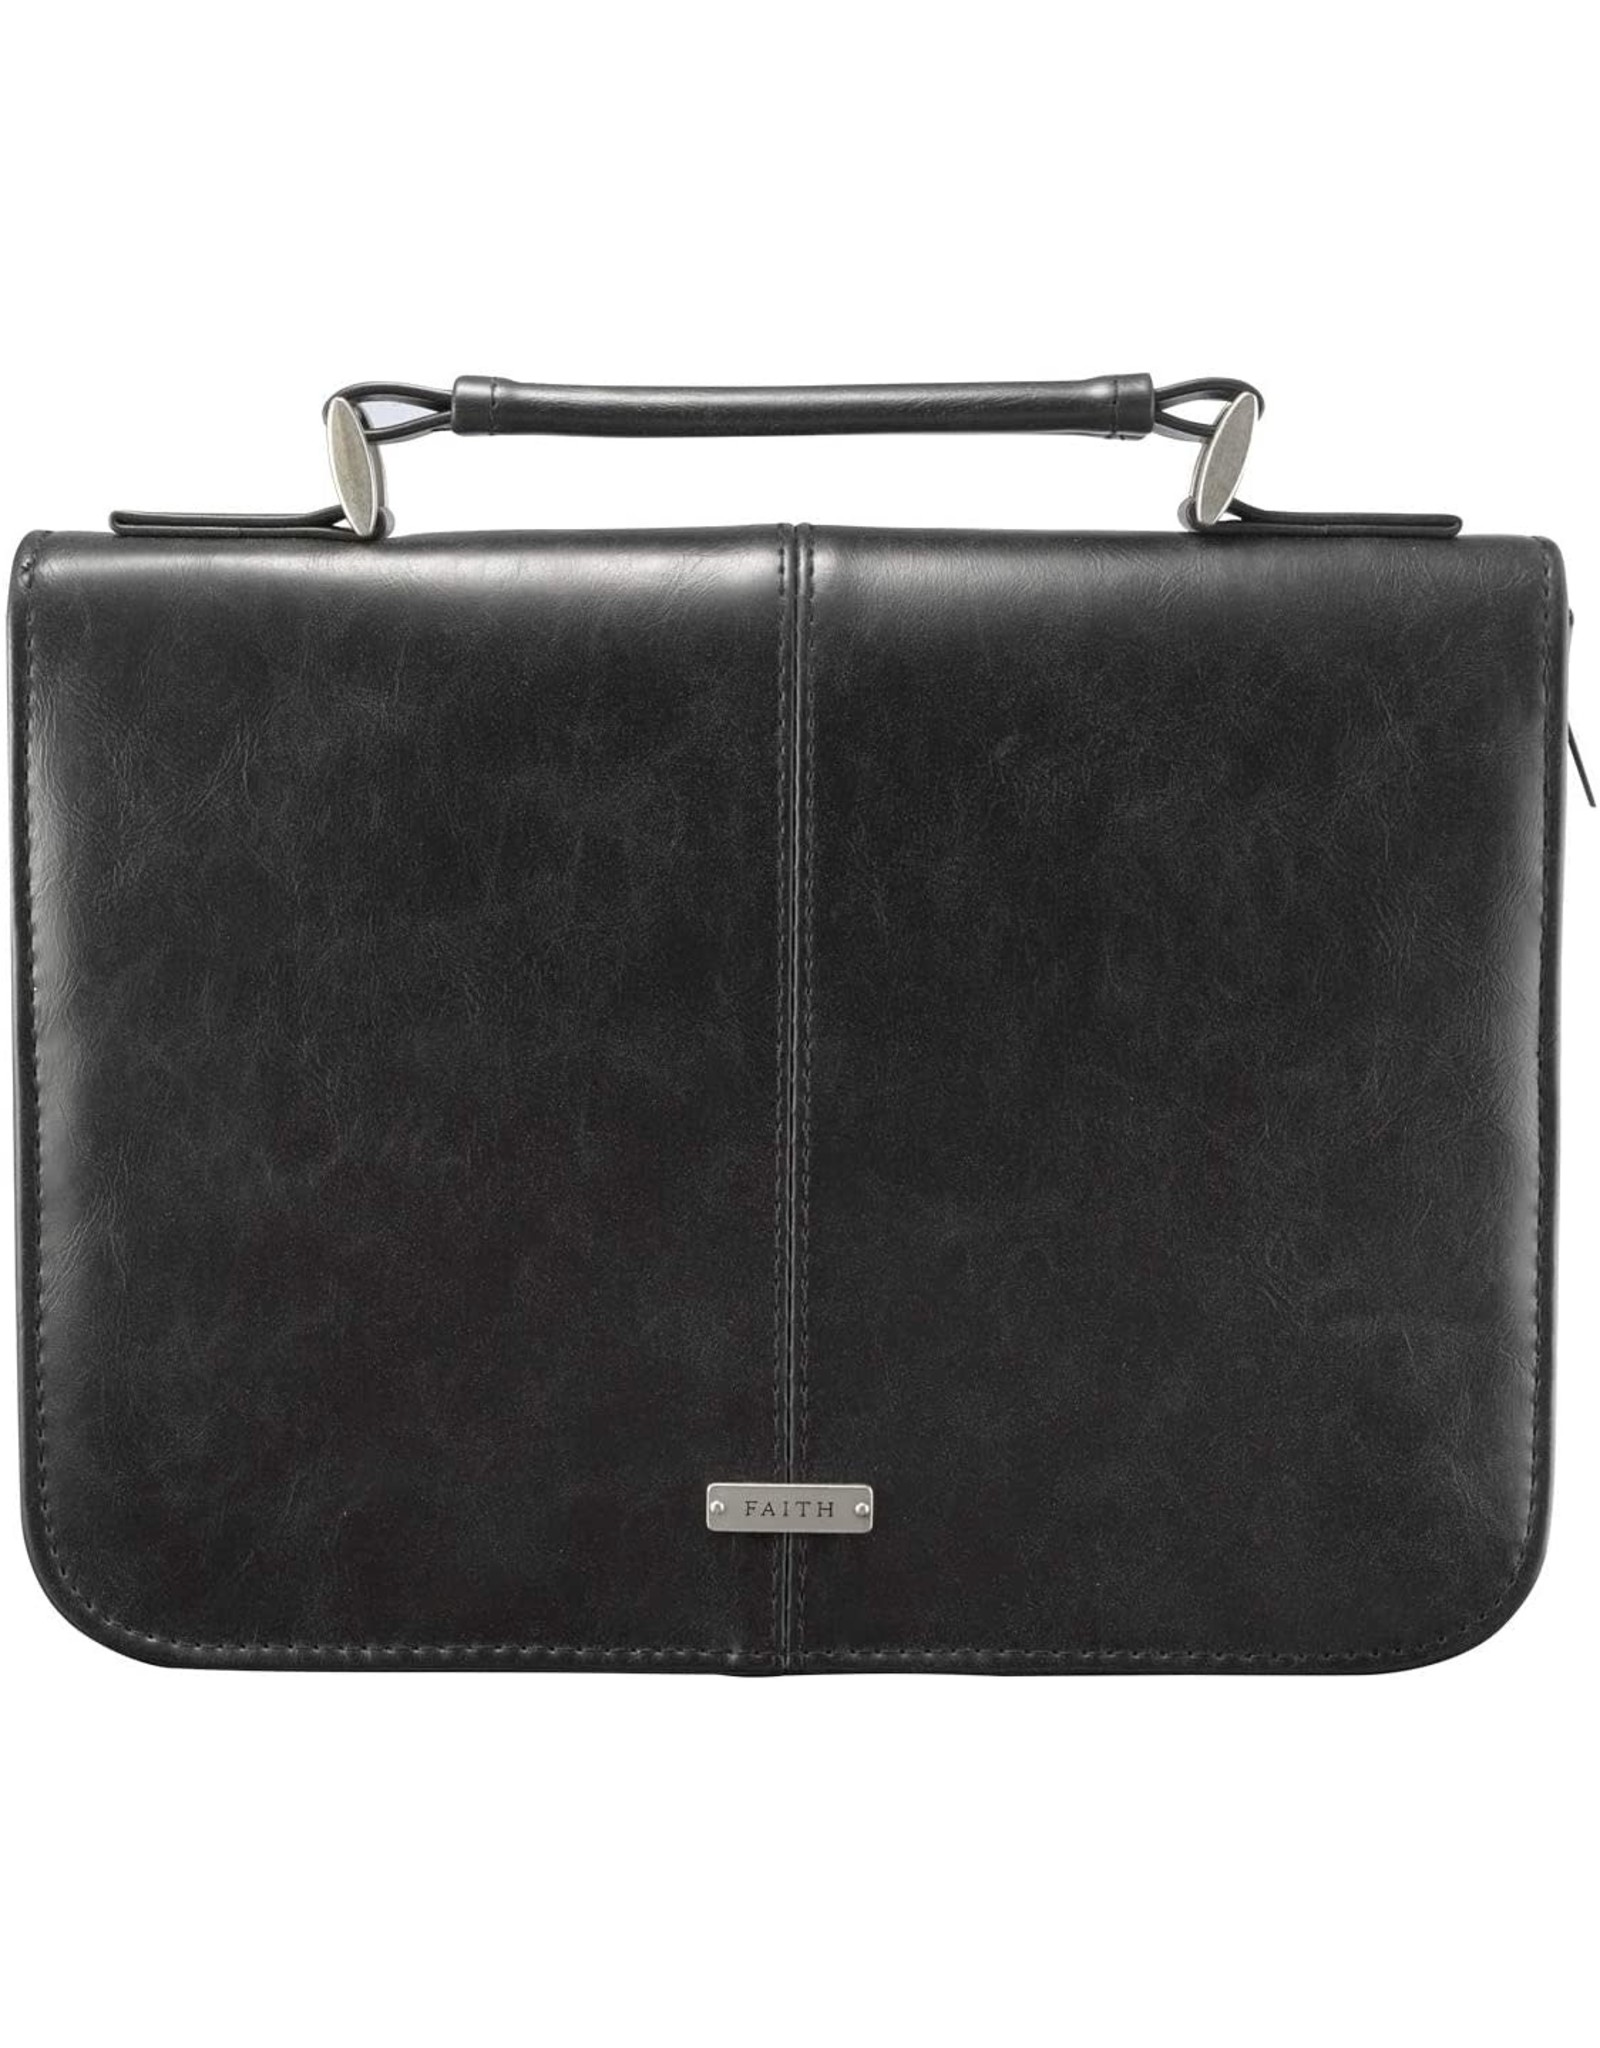 Bible Cover-Large-Black Leather-Look